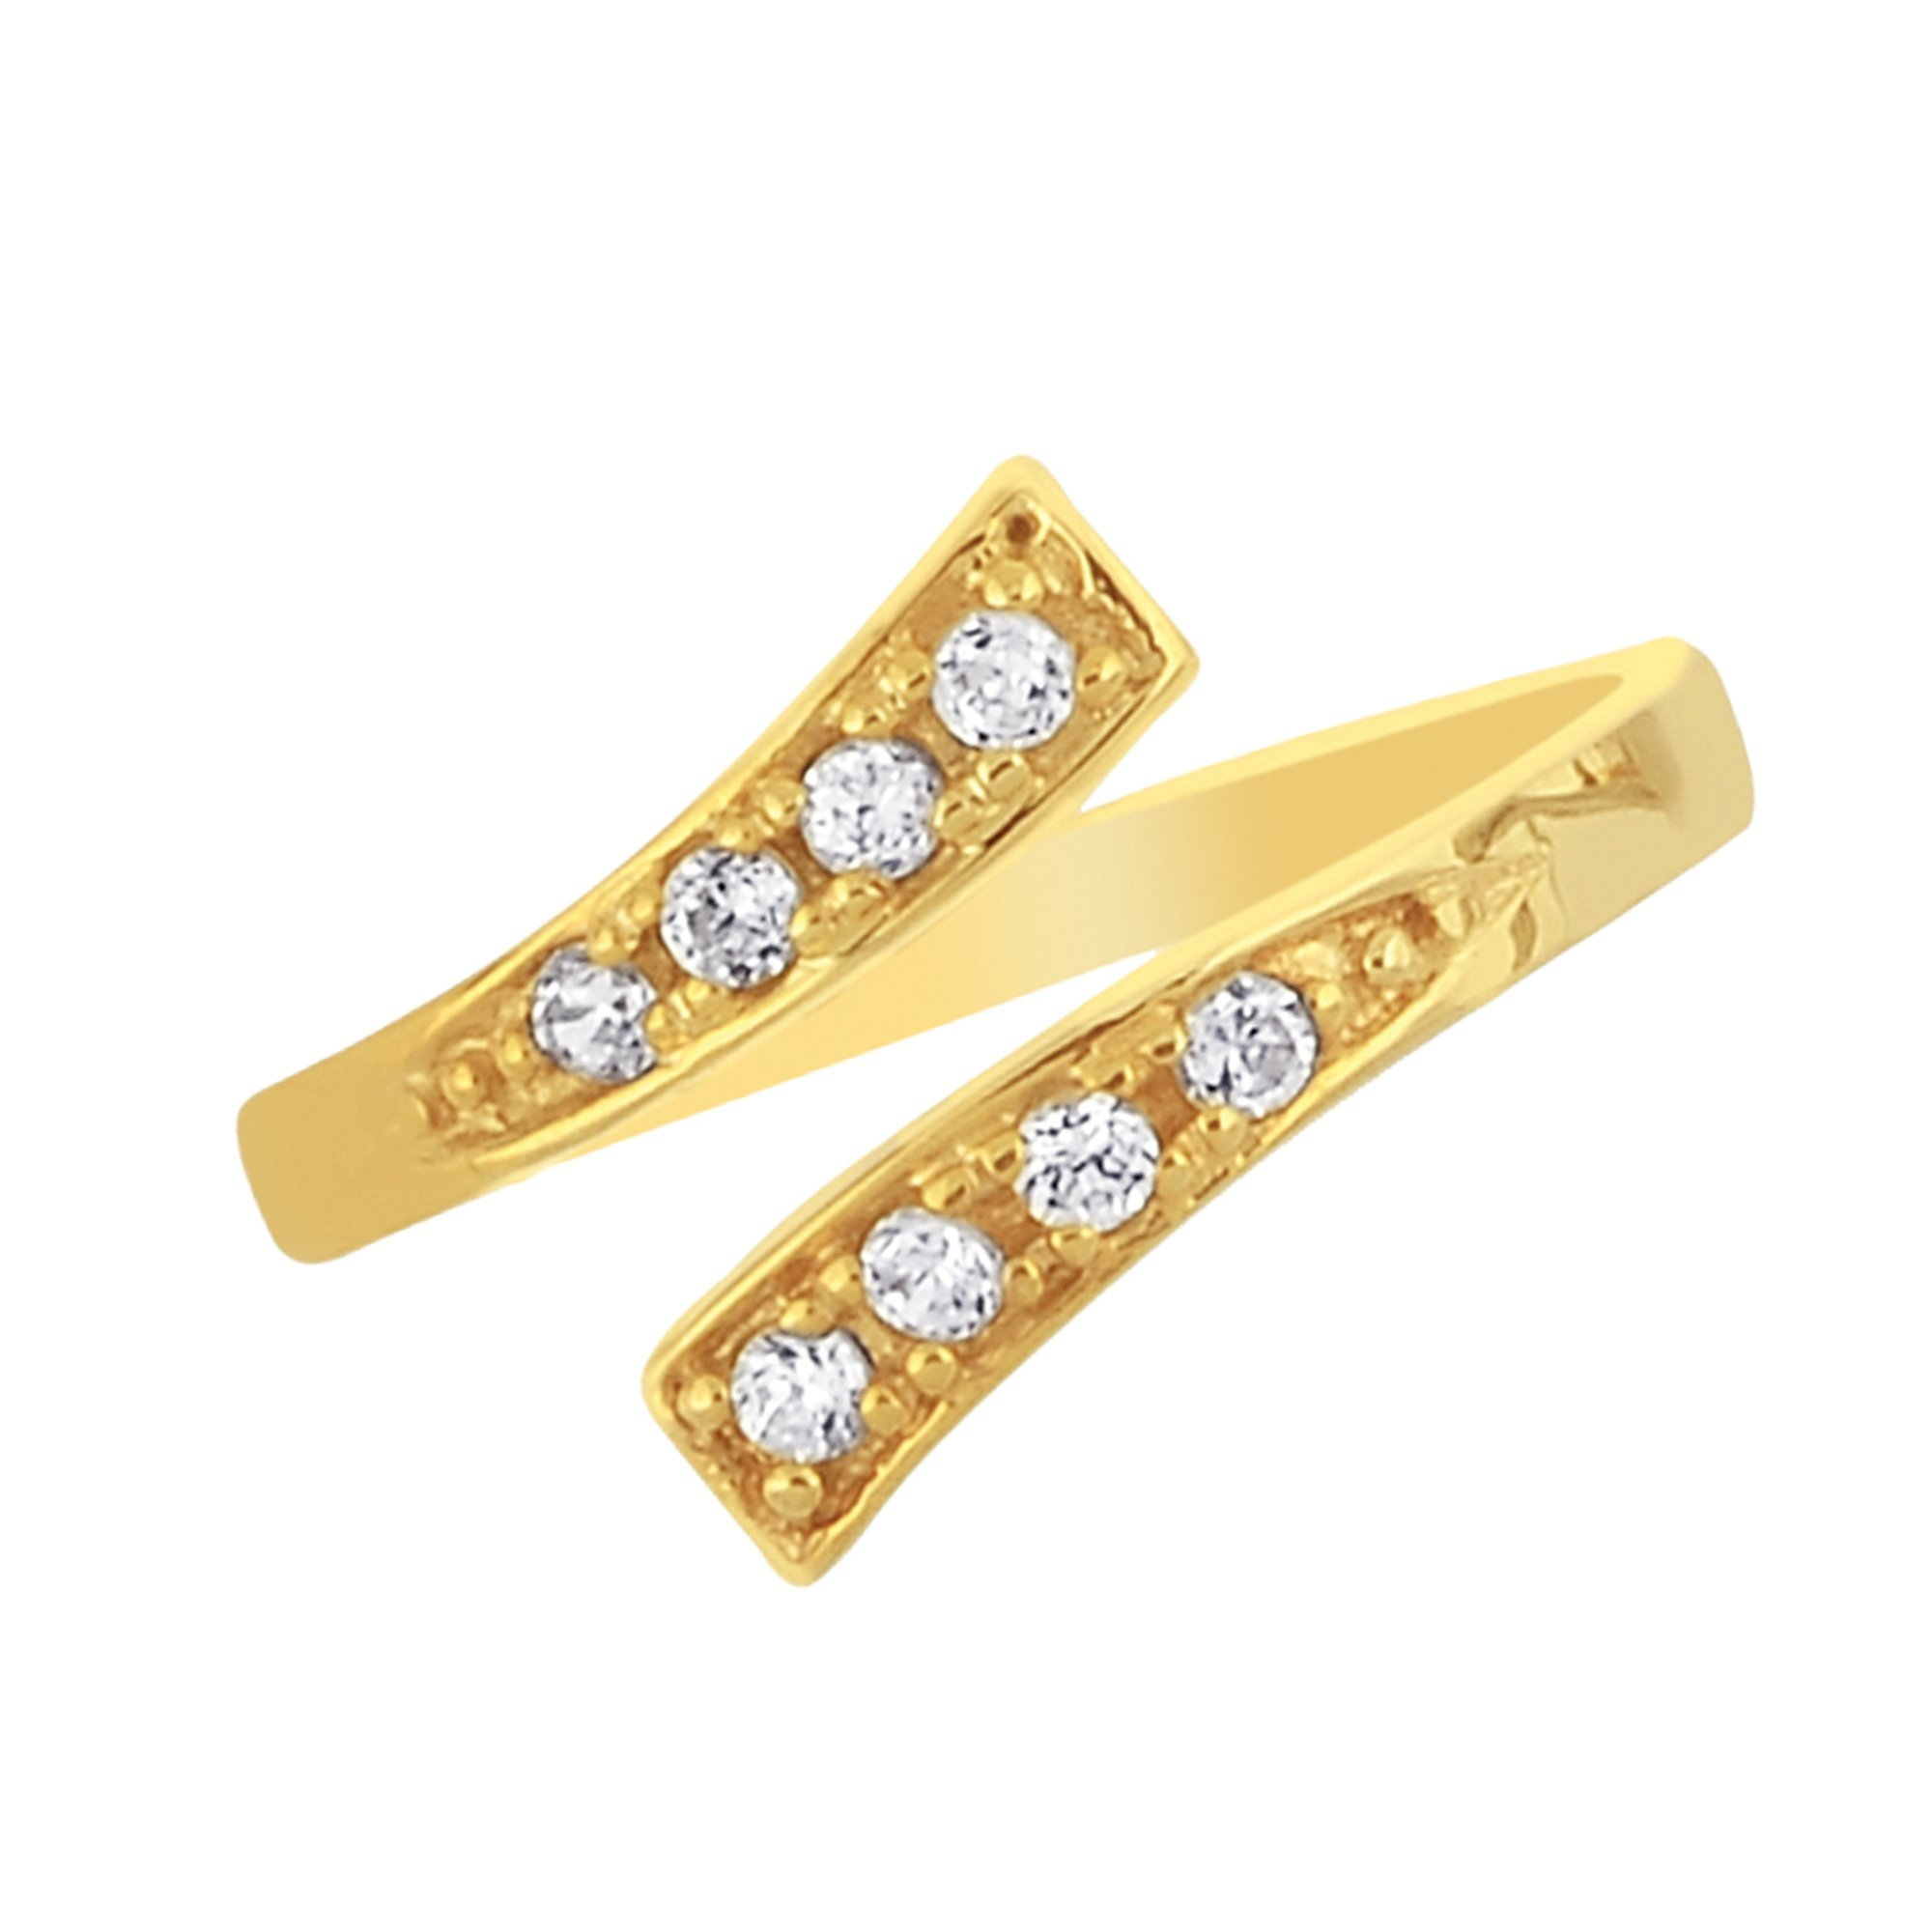 Ritastephens 10K Yellow Gold Crossover Shiny CZ Cubic Zirconia Toe Ring or Ring Adjustable by Ritastephens